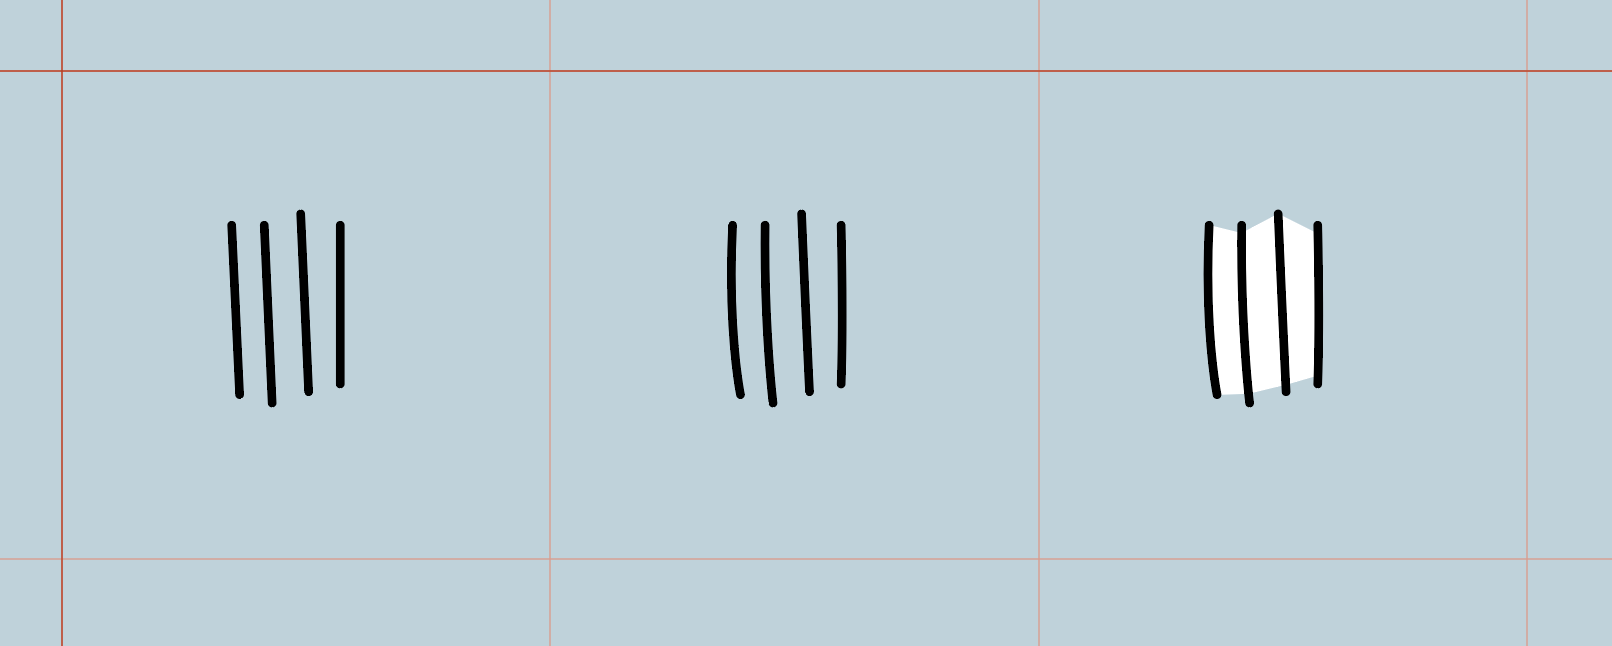 (1) Draw lines (2) make lines irregular (3) draw white masking shape behind lines